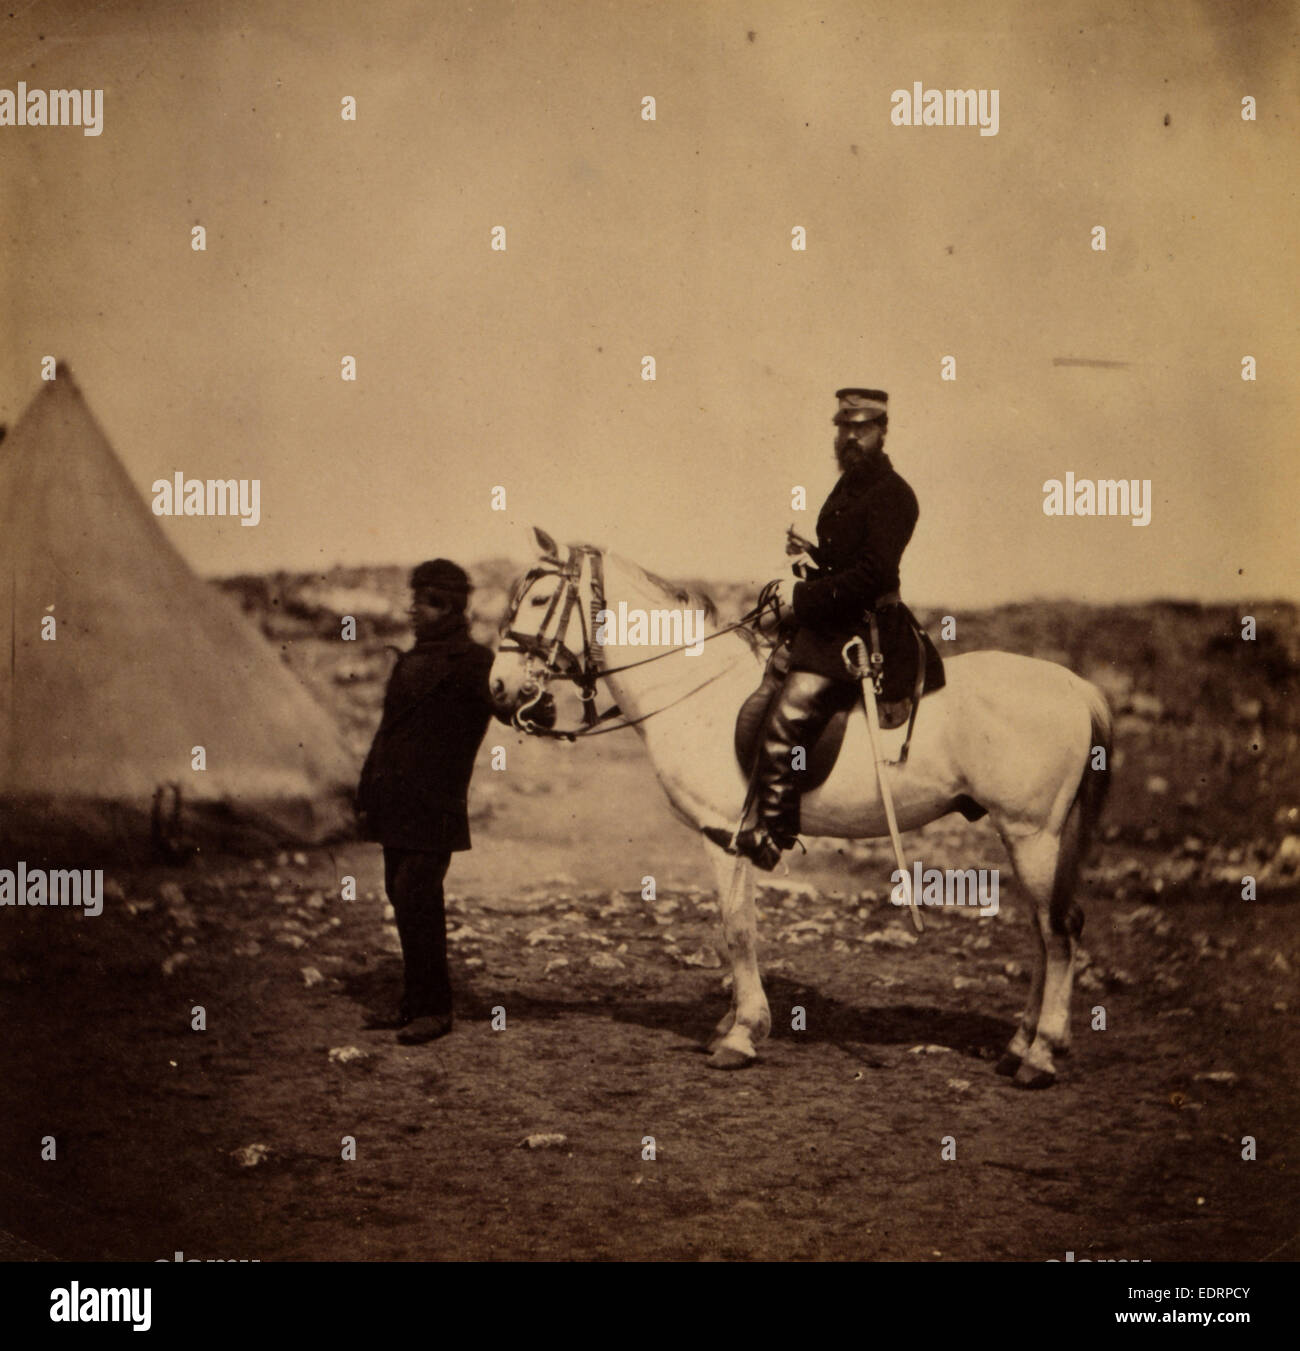 Mr. Thompson, Commissariat, Crimean War, 1853-1856, Roger Fenton - Stock Image